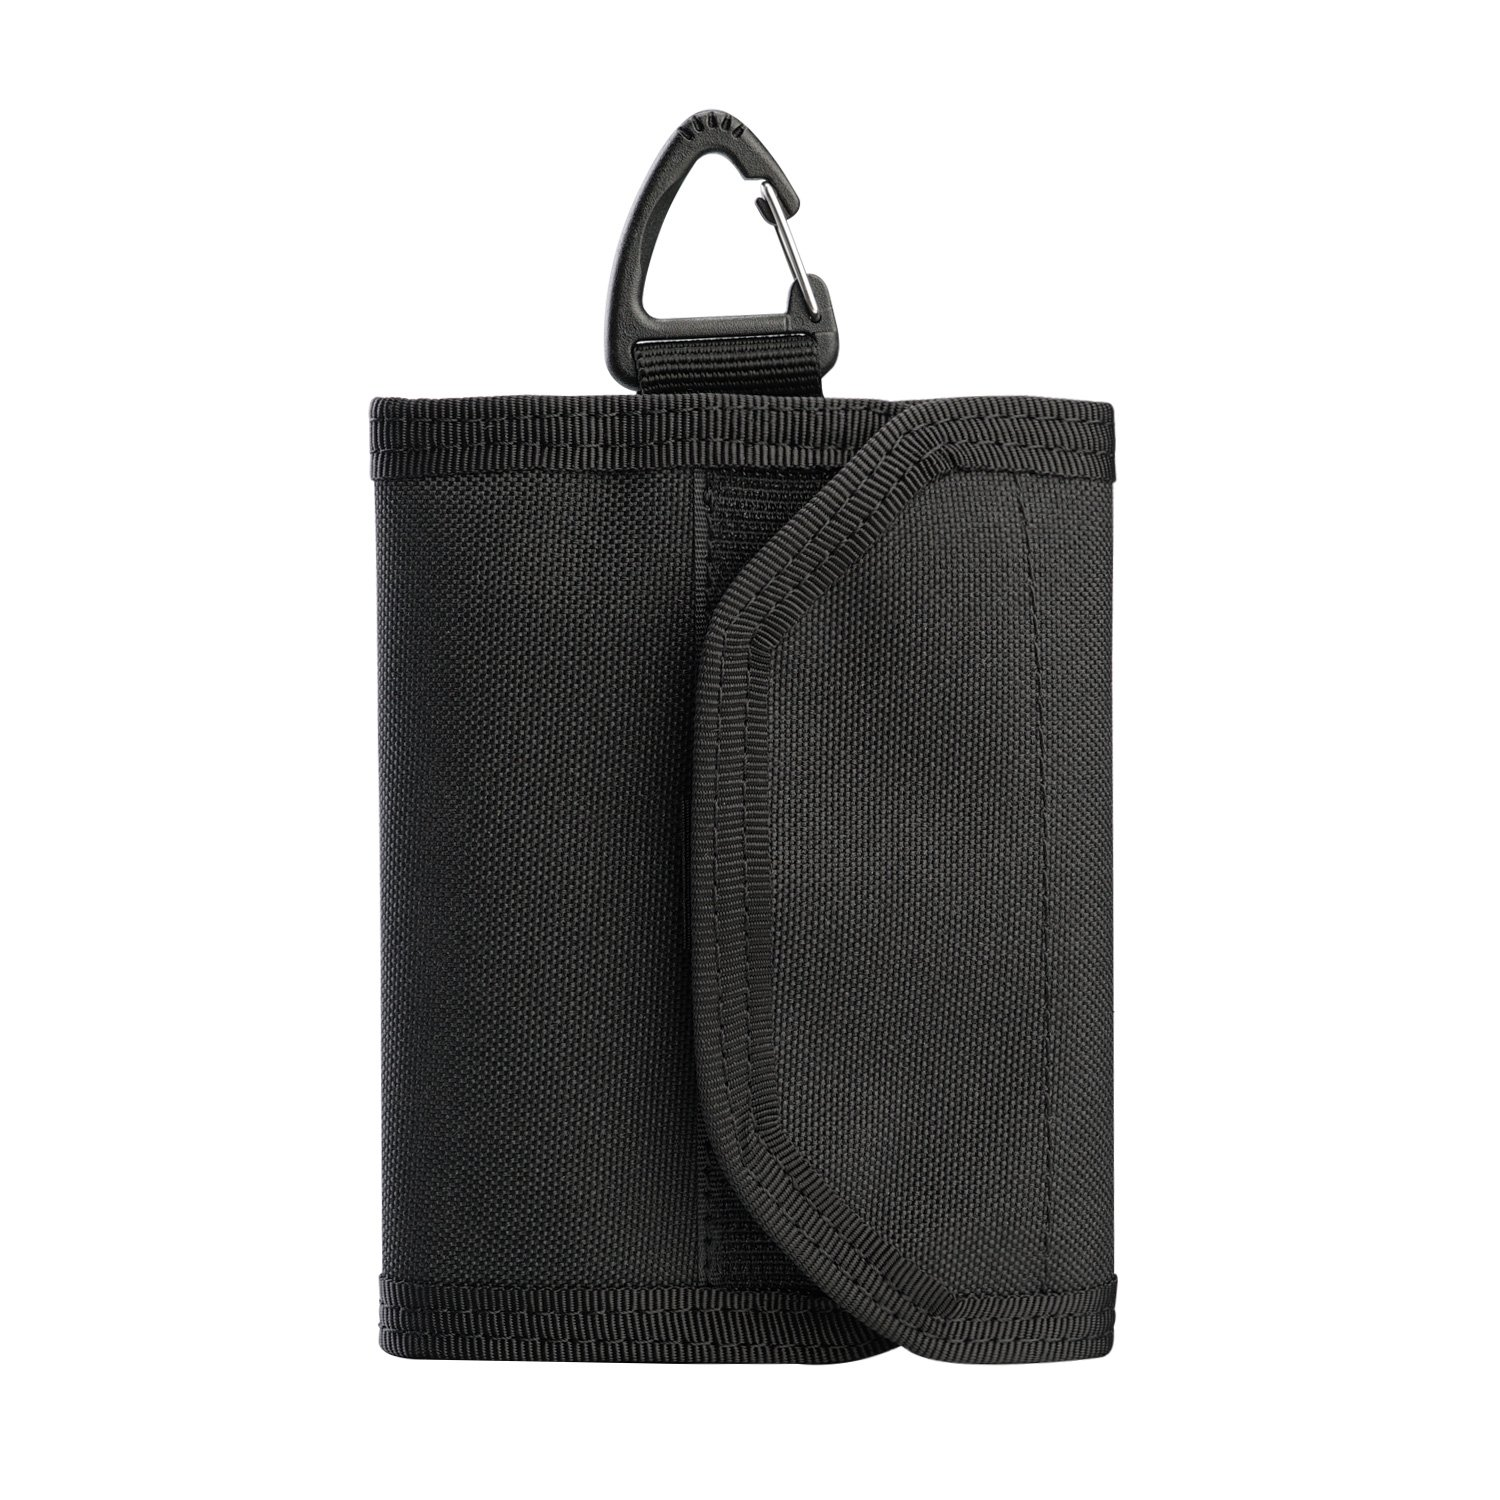 Viperade Ultralight EDC Wallet, Multifunctional Travel Wallet and Key Cases, Small Volume with Large Capacity